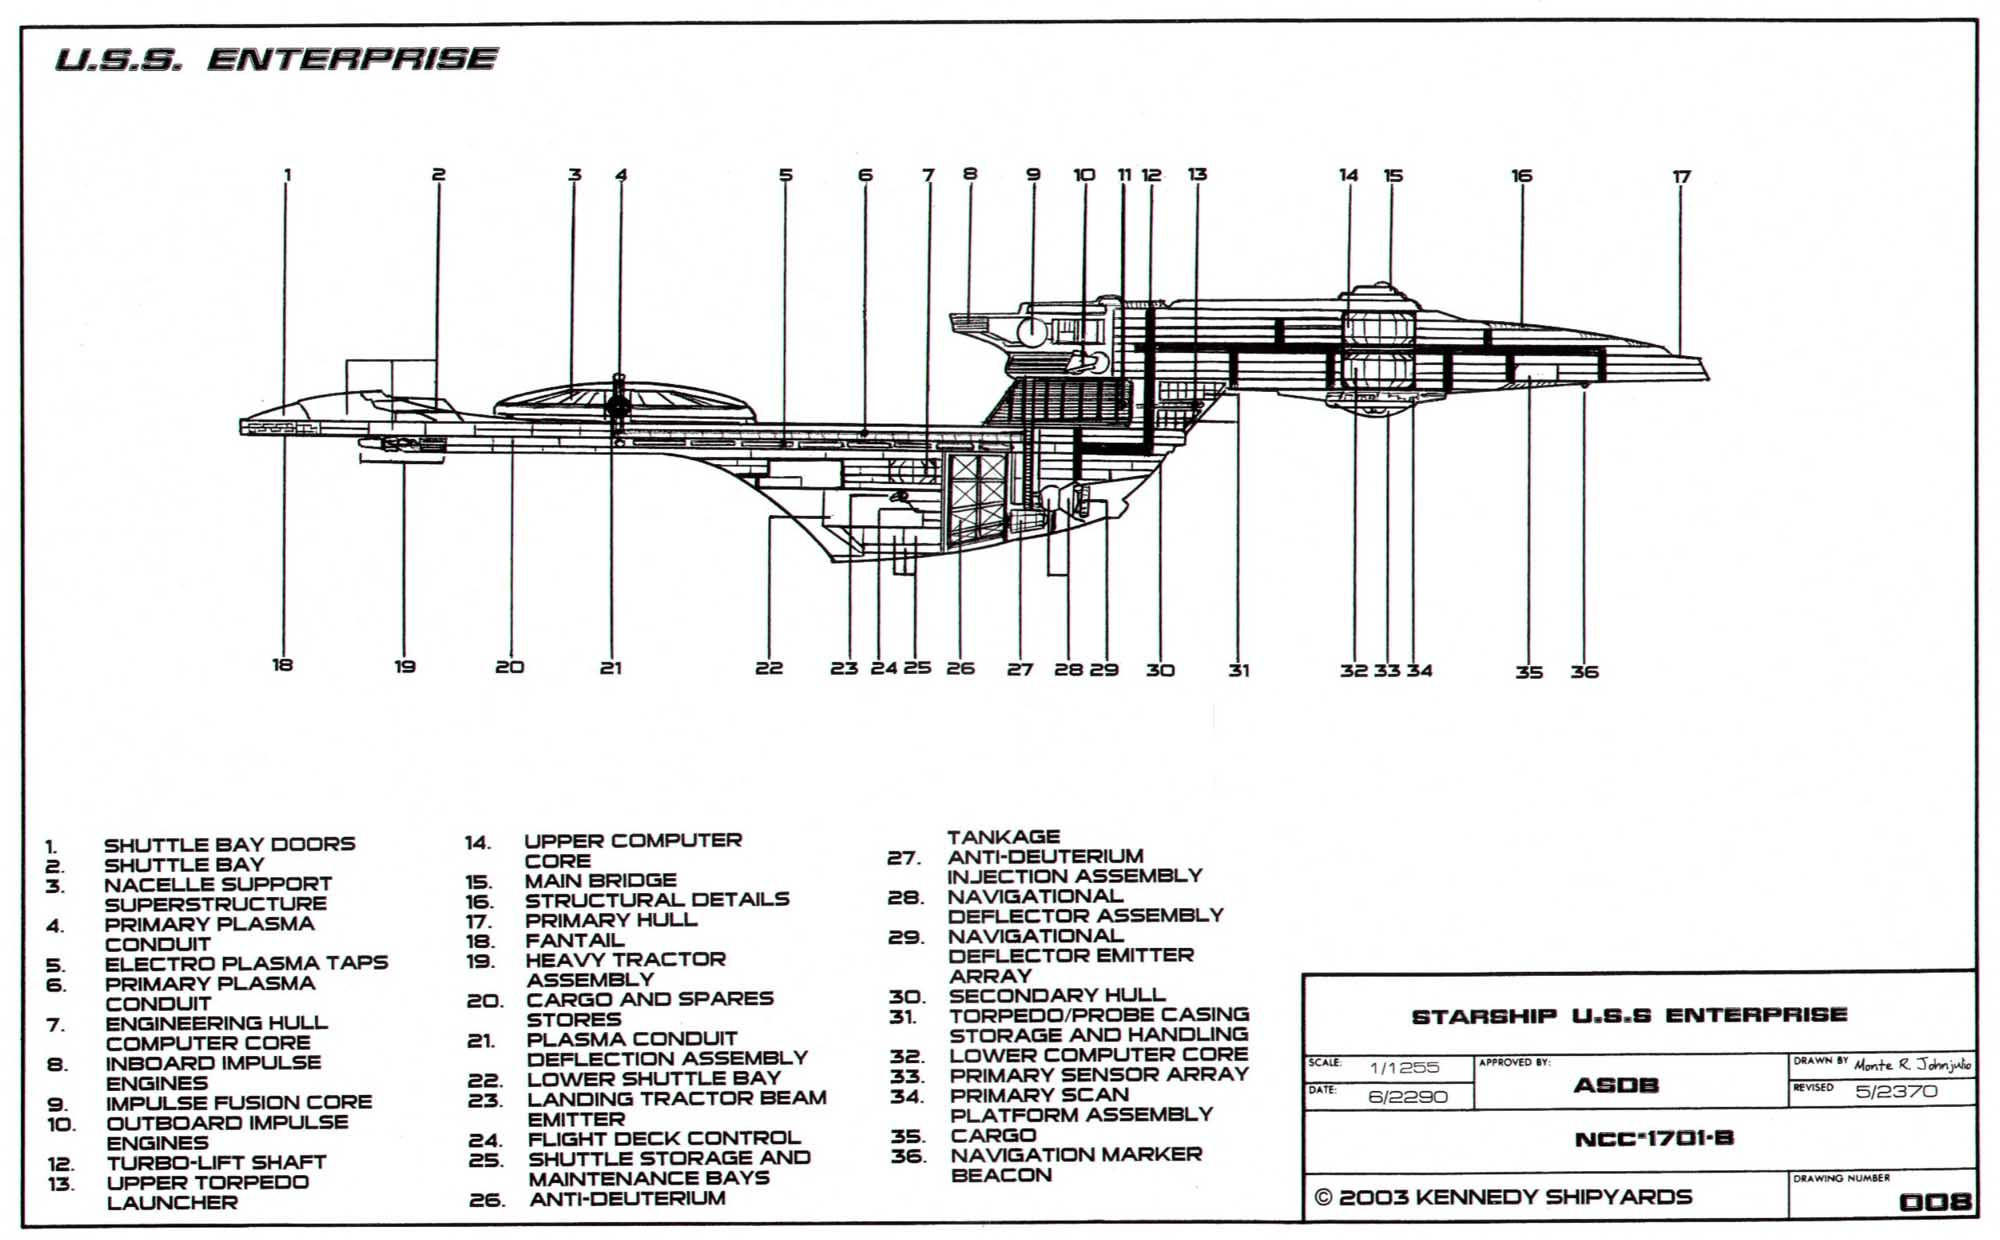 Excelsior Class Enterprise B Deckplans Blueprints